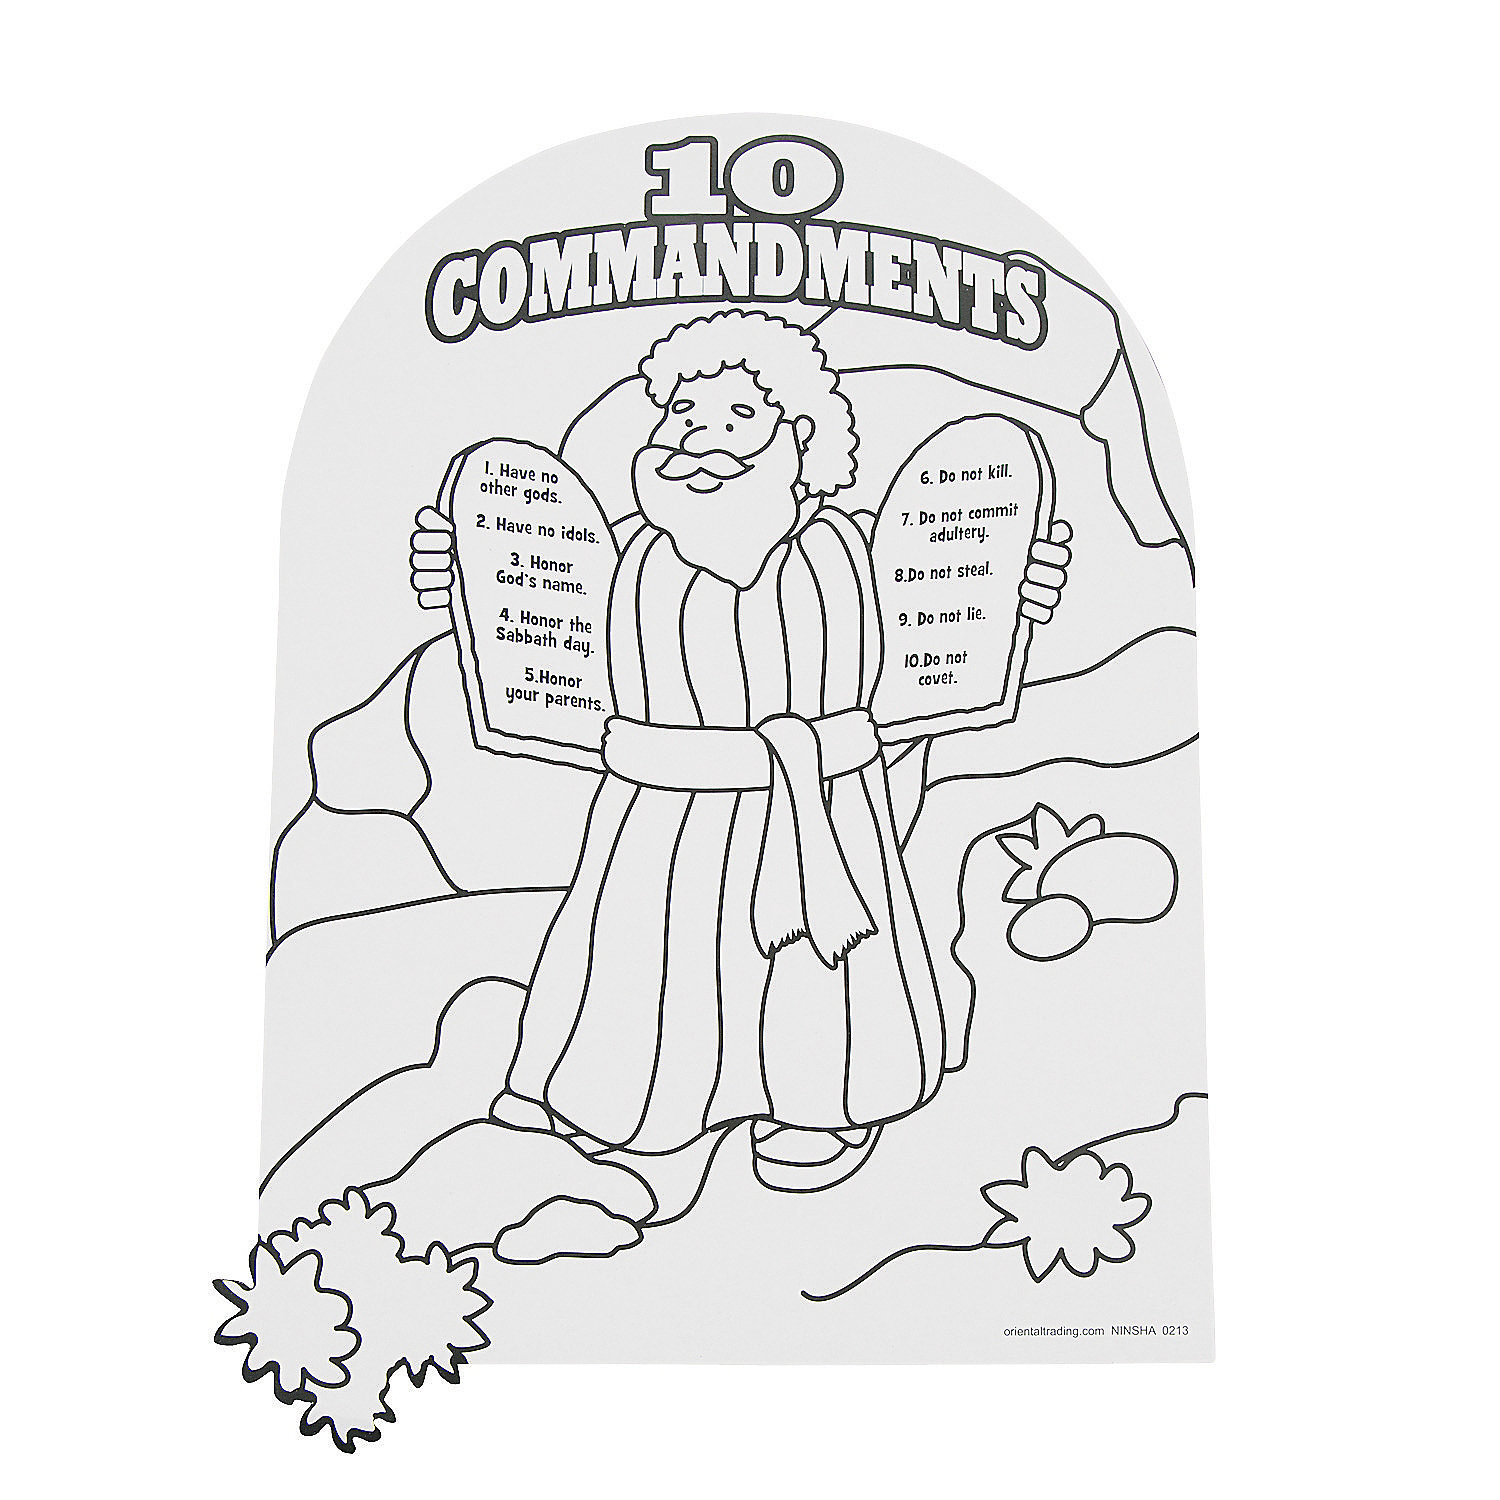 moses ten commandments coloring page search results calendar 2015